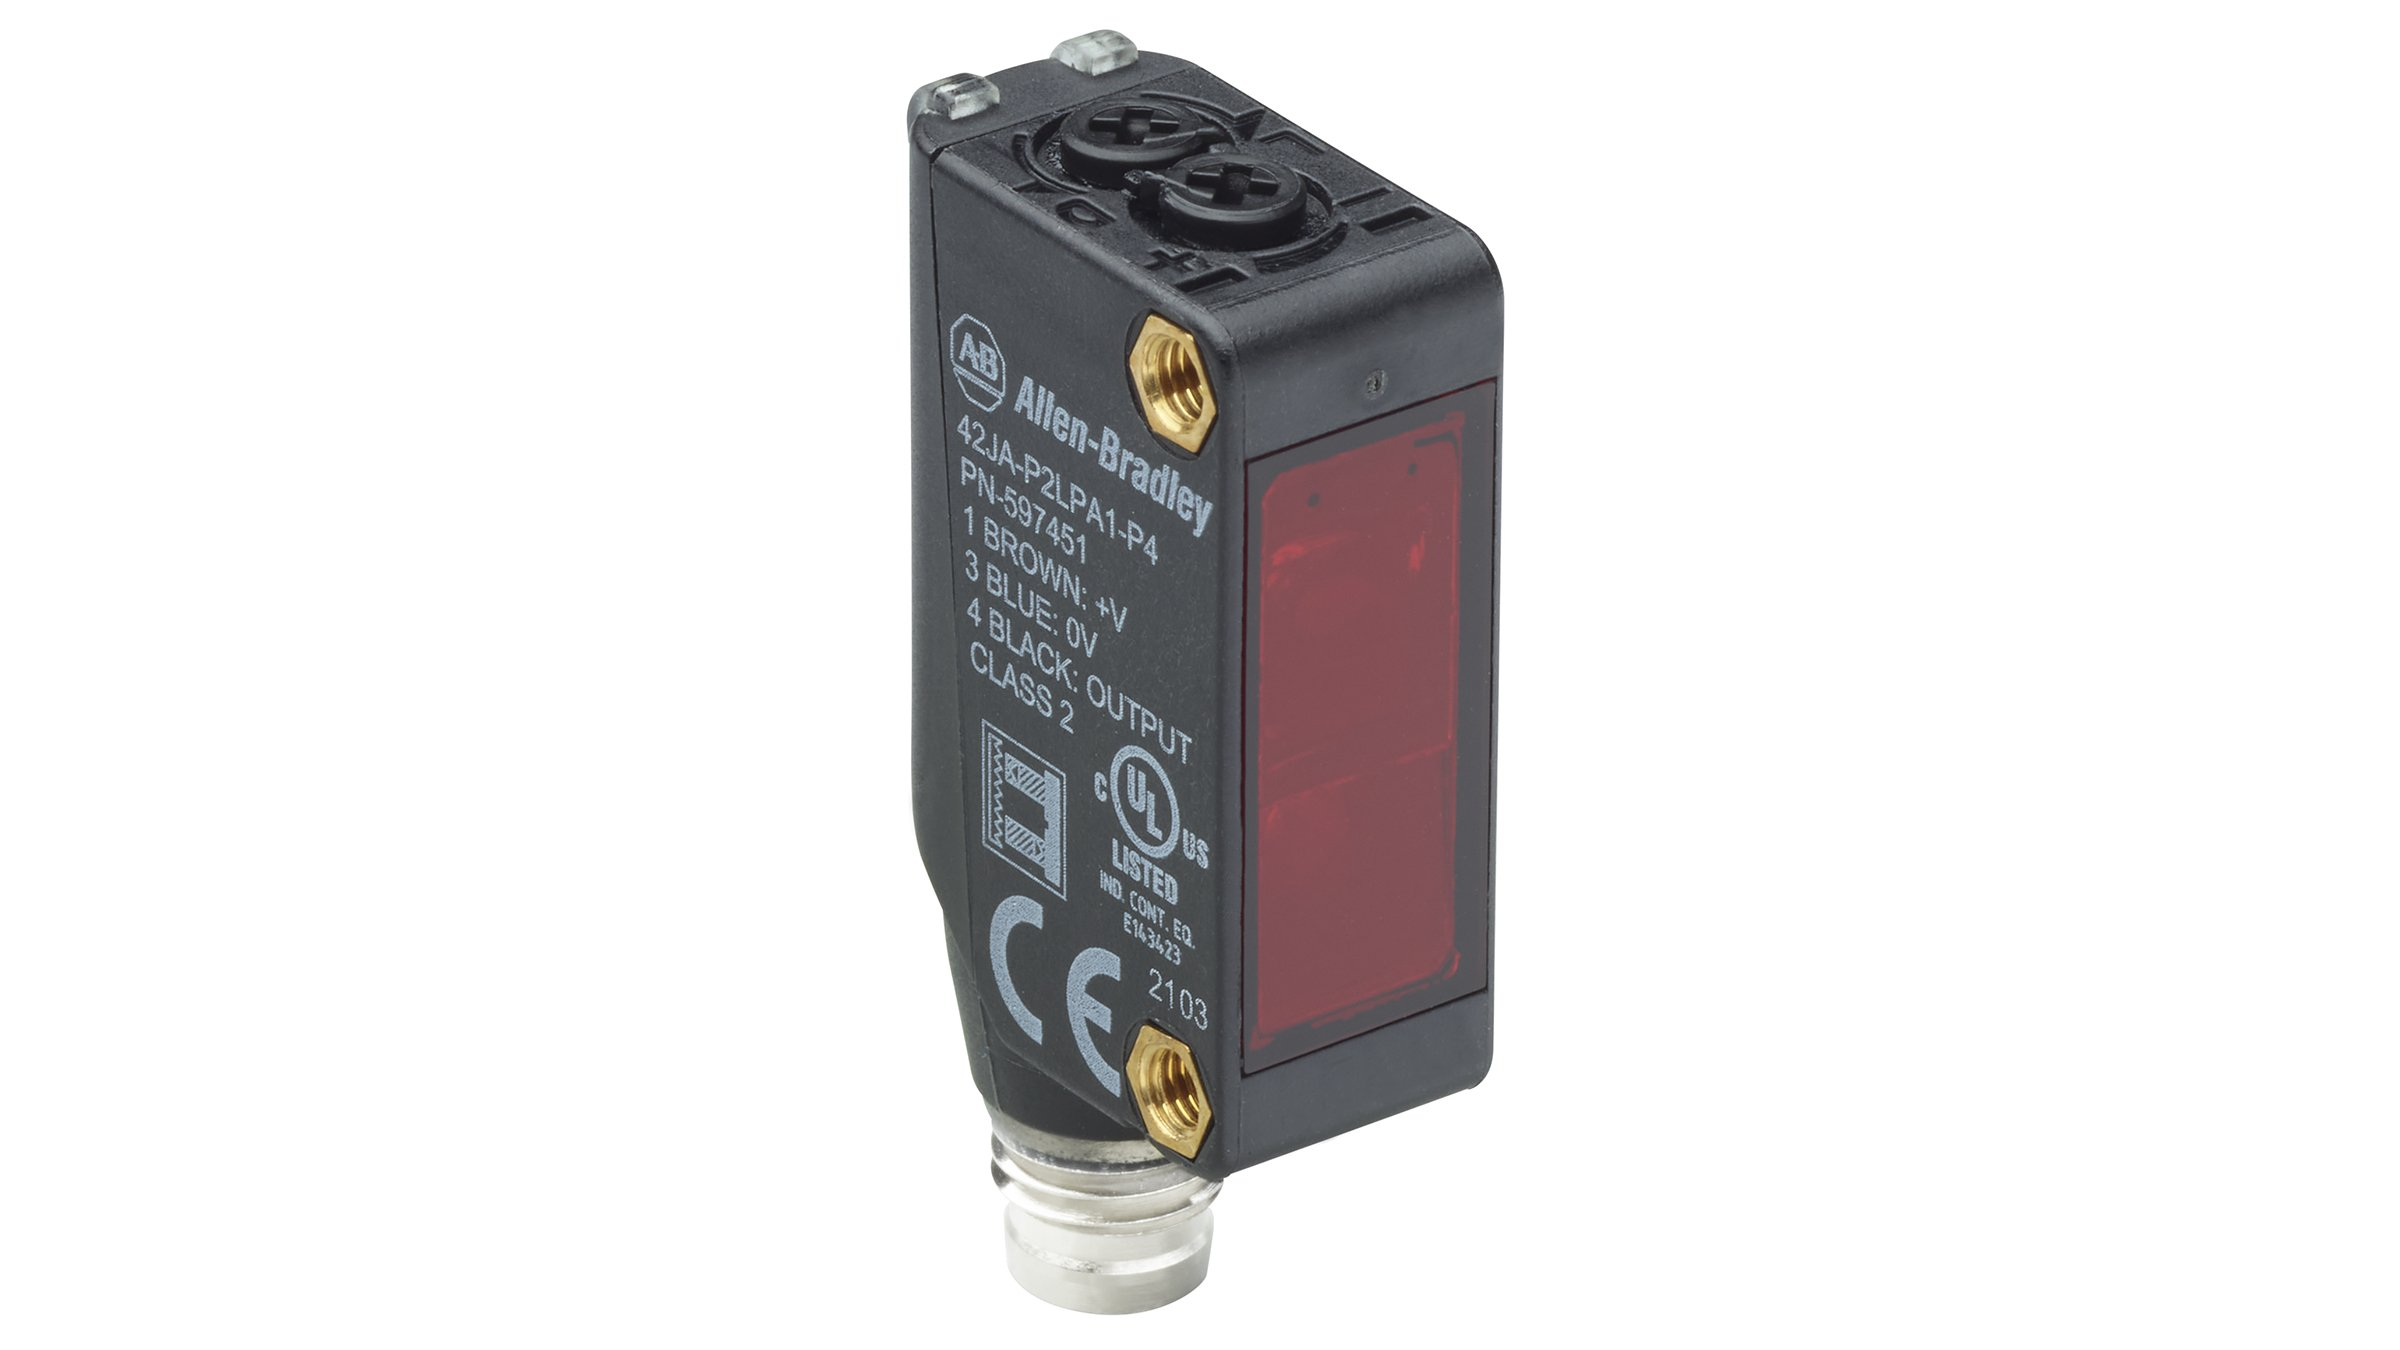 Static view of a black 42JA VisiSight sensor with red lens, indicator LEDs, adjustment knobs on top and integrated quick cable connector coming out of the bottom.